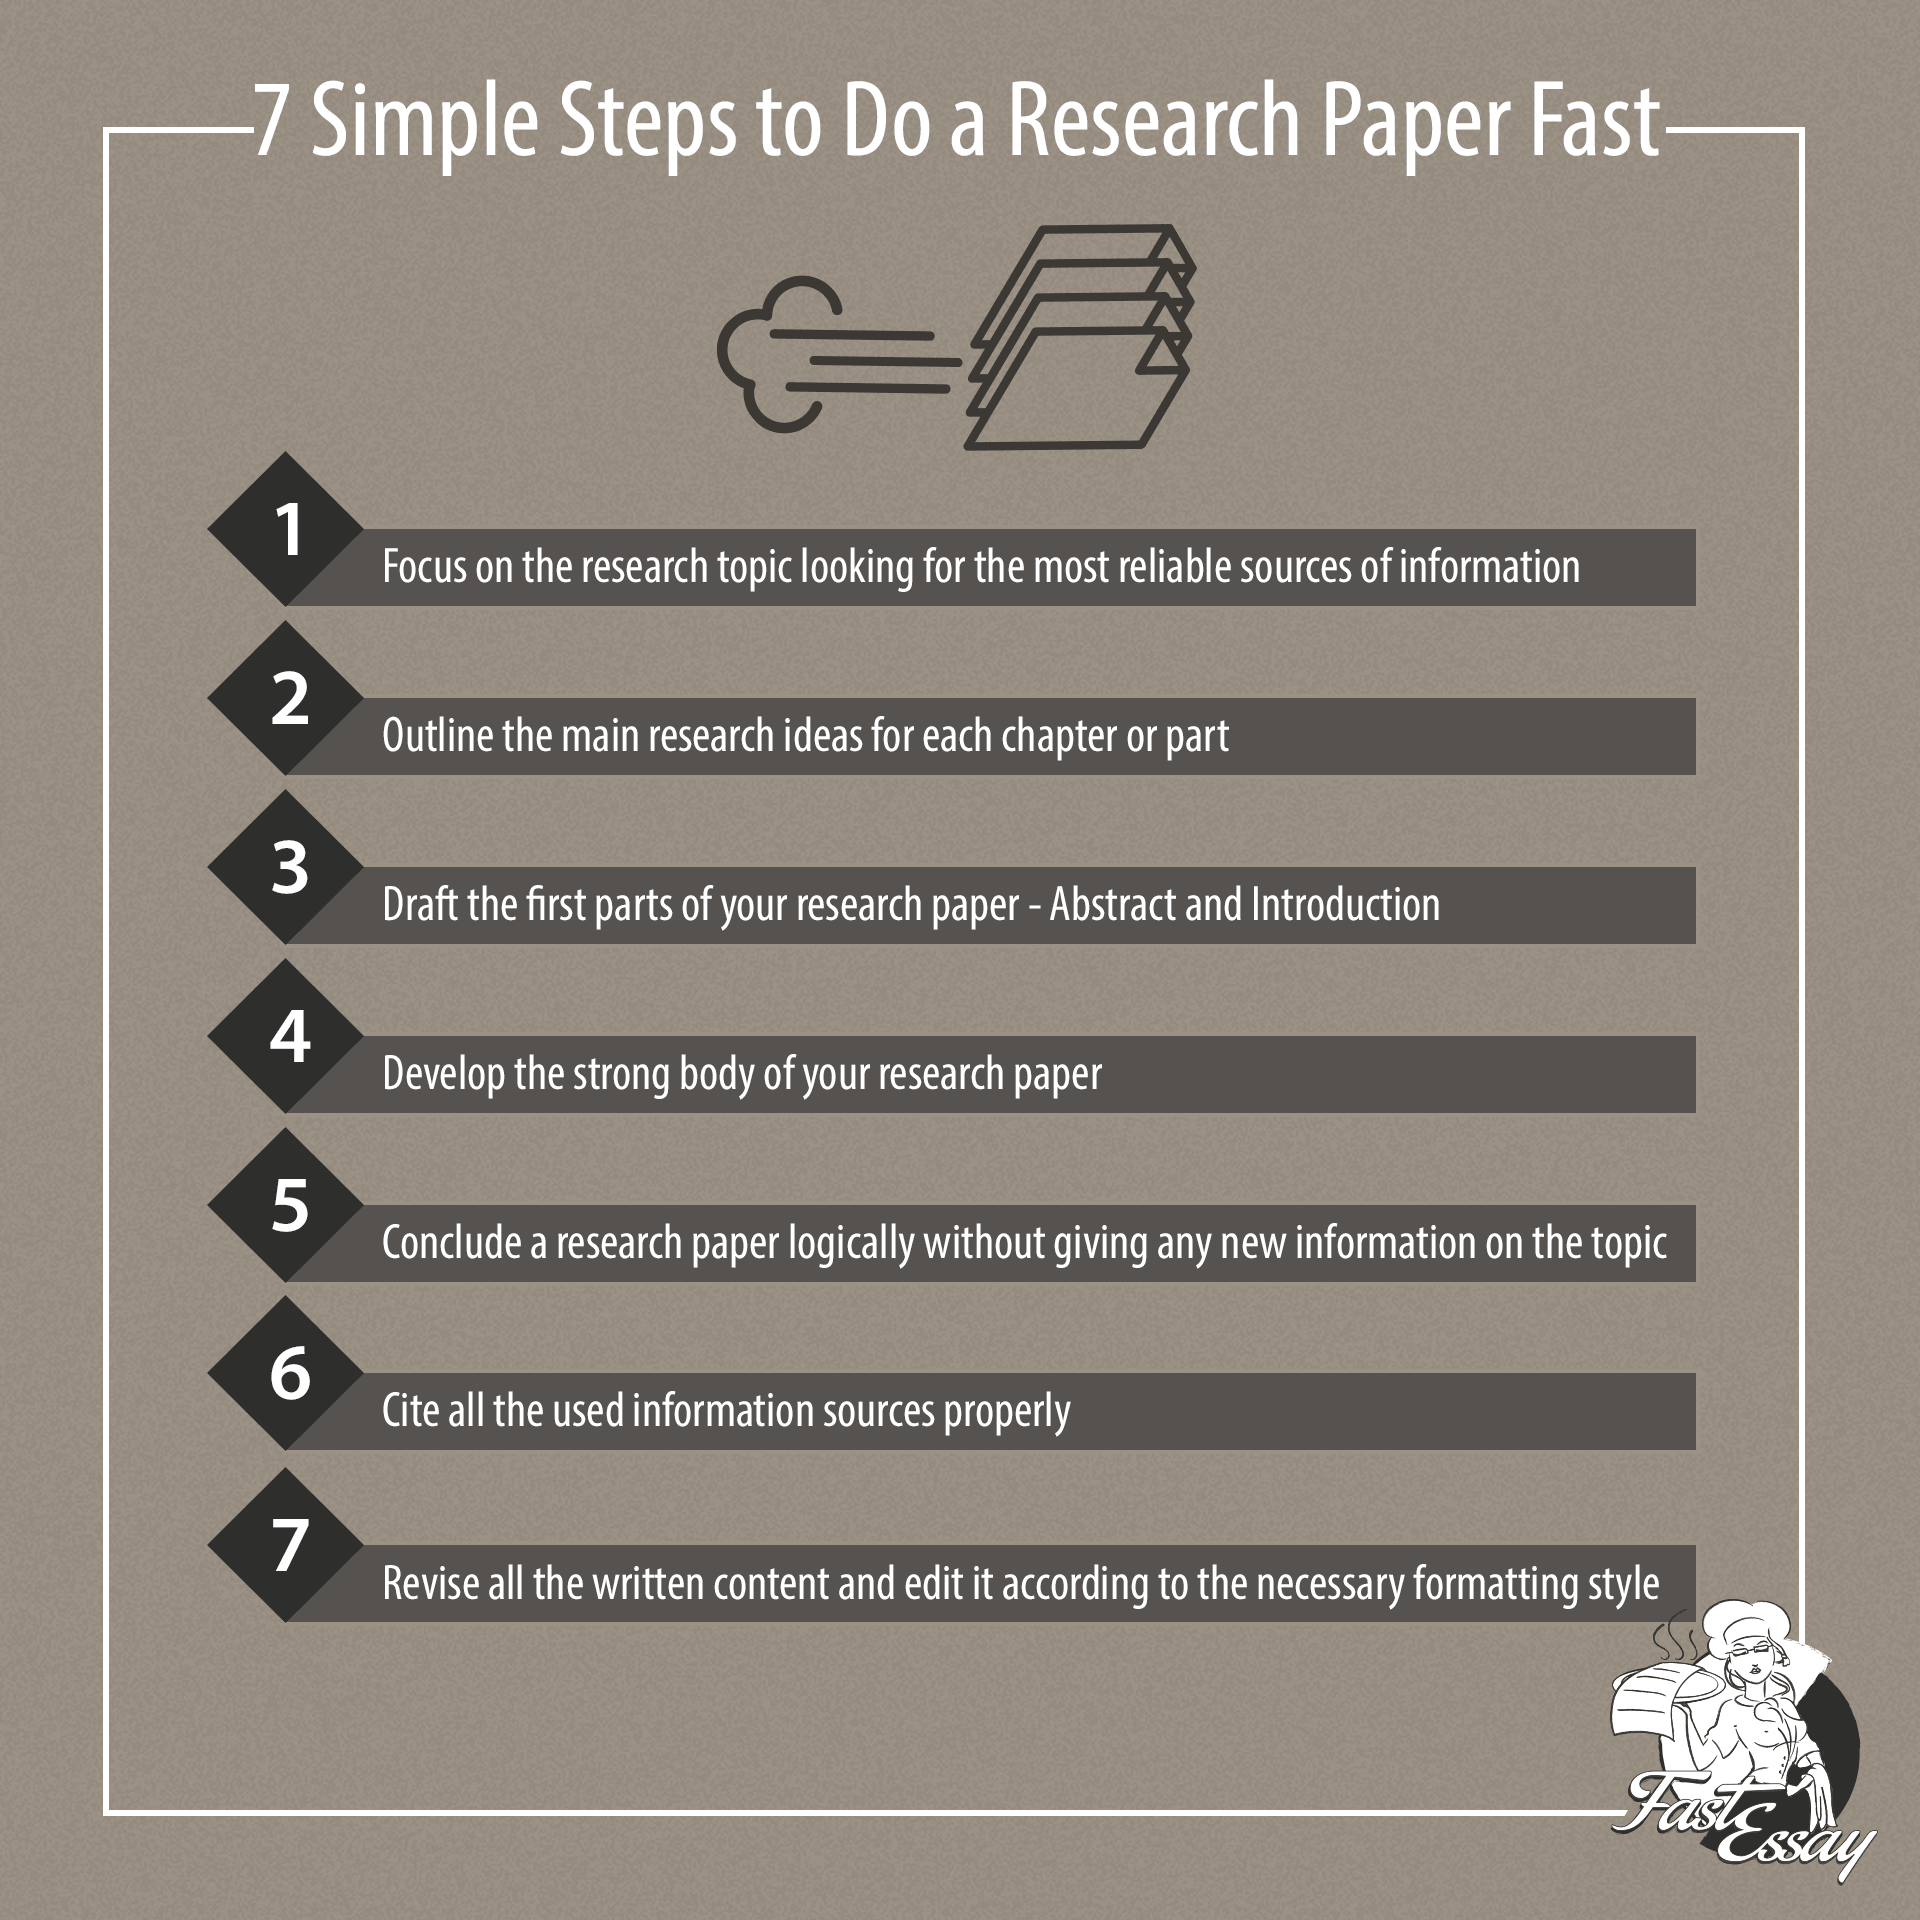 Second, Source Quality Information for Your Research Paper